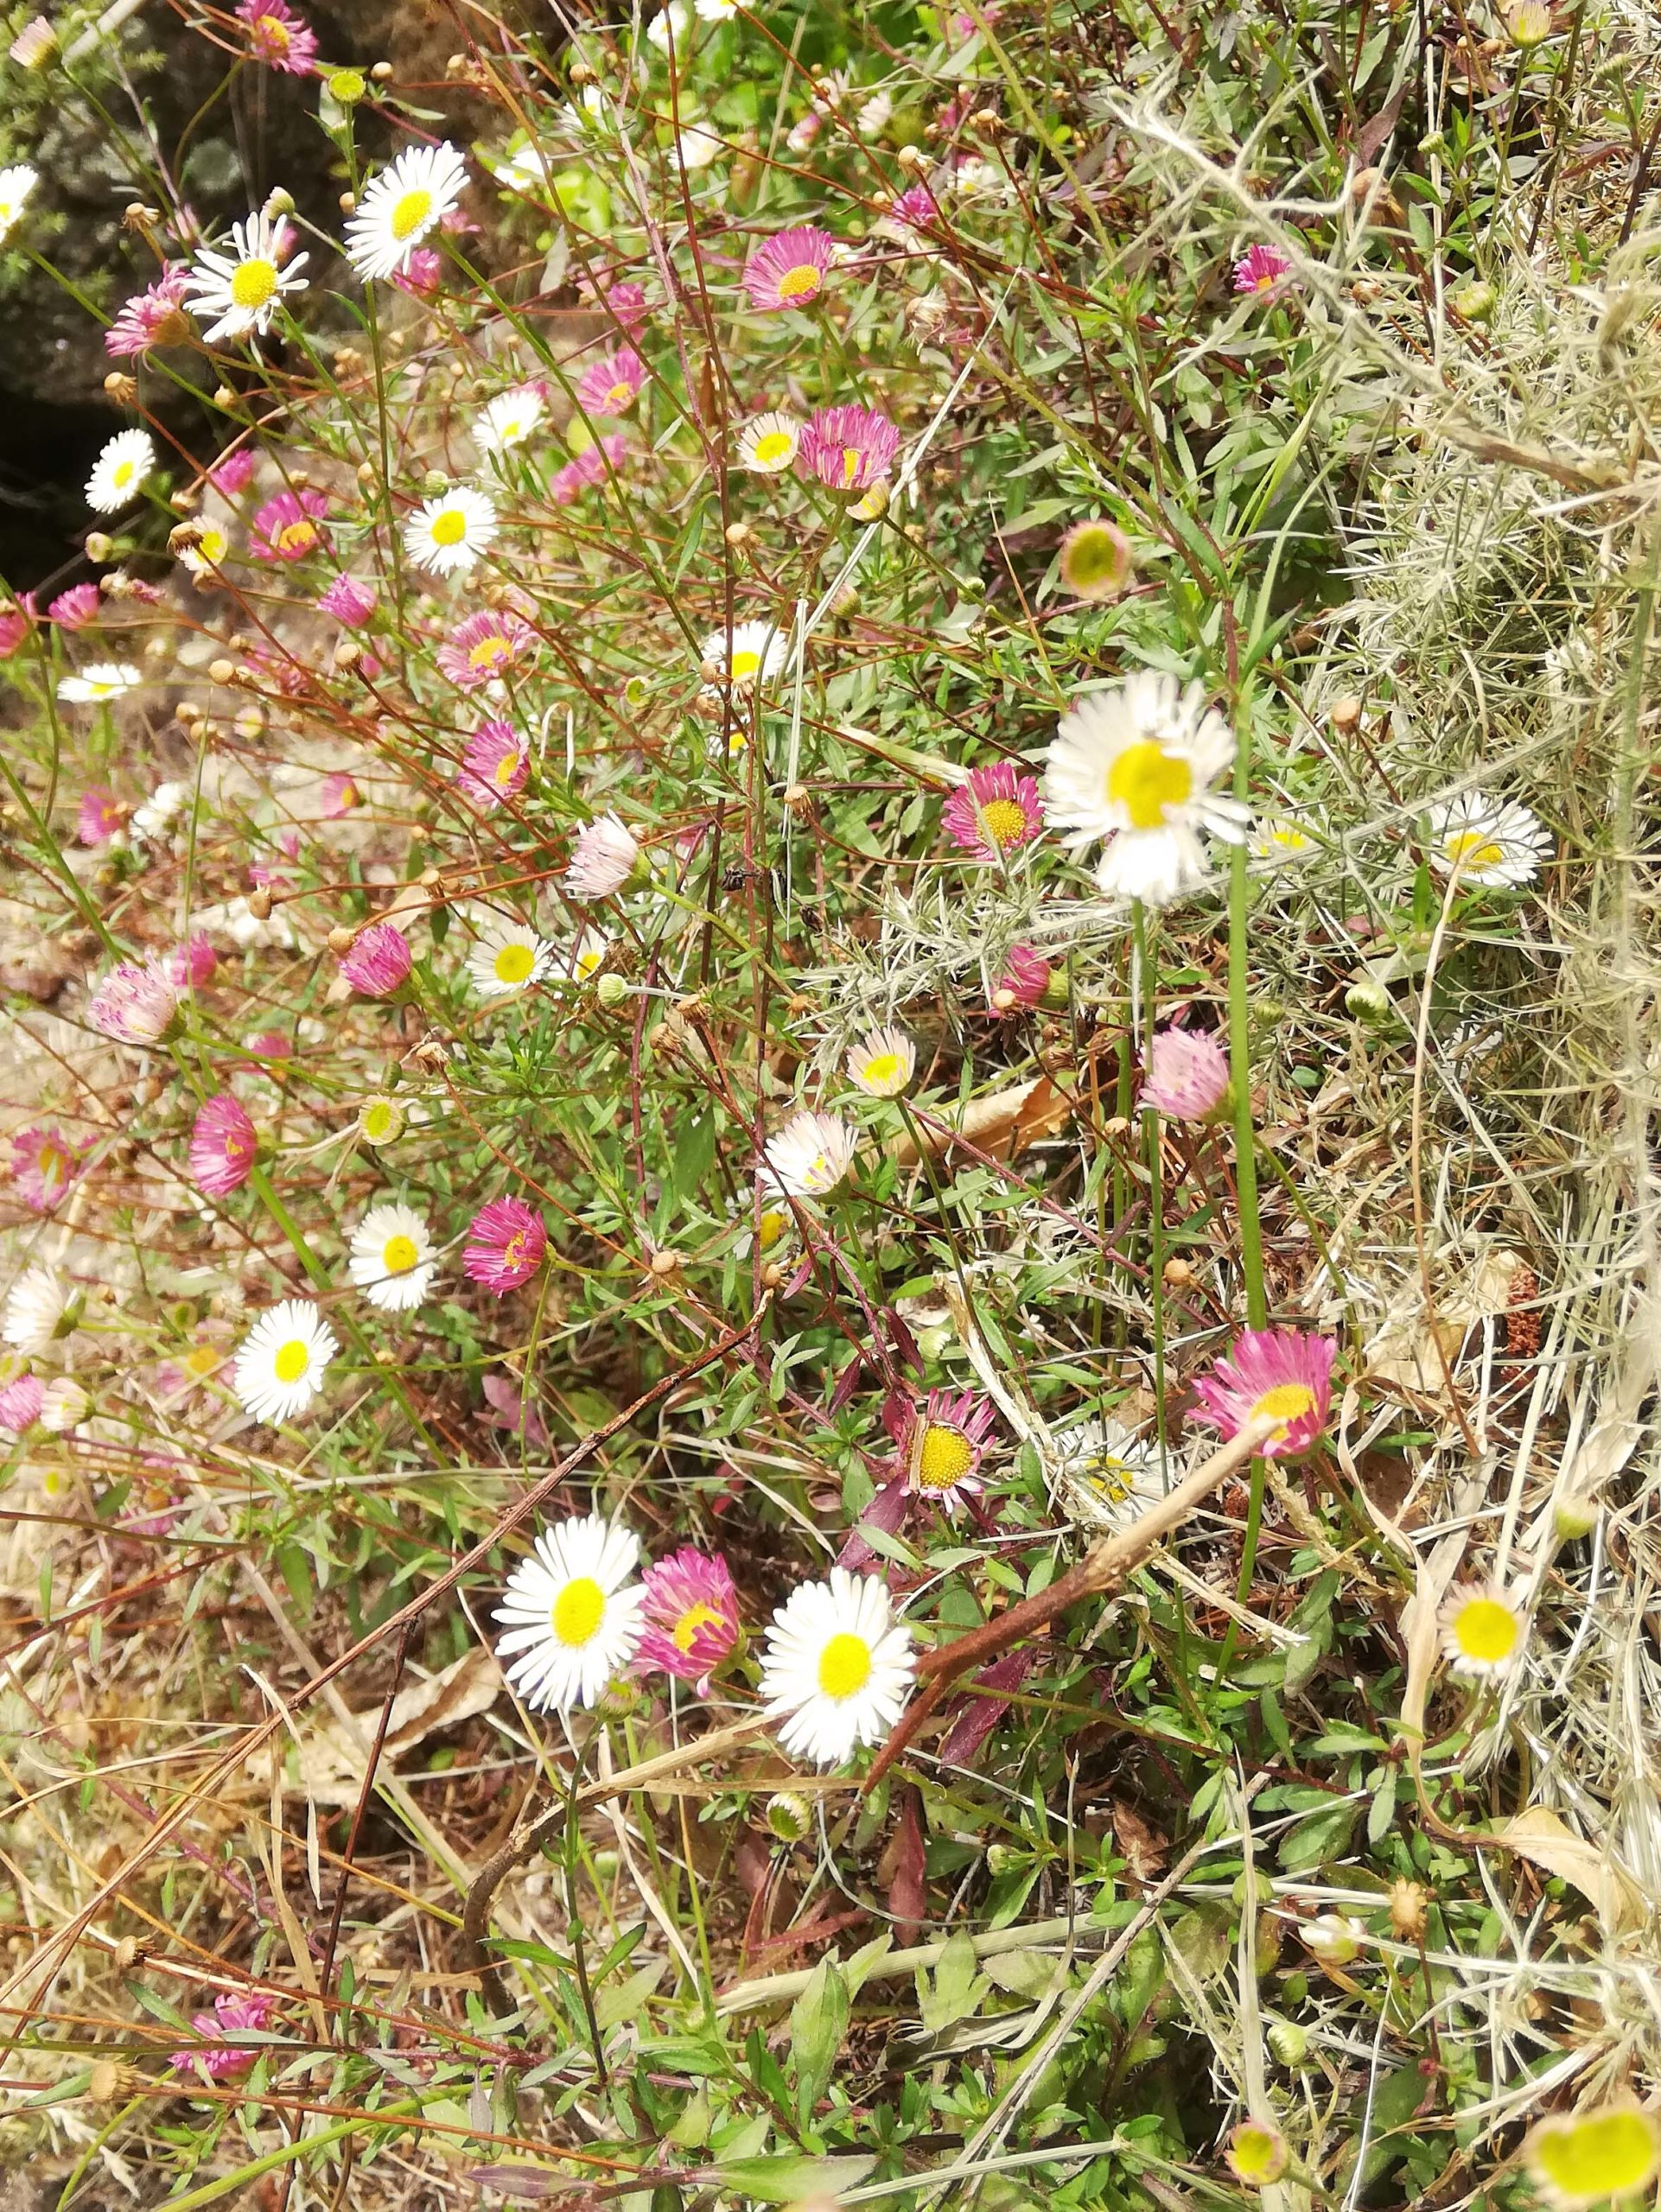 Another year has gone by, and in New Zealand fresh summer daisies are springing up to signal new growth and new hope.